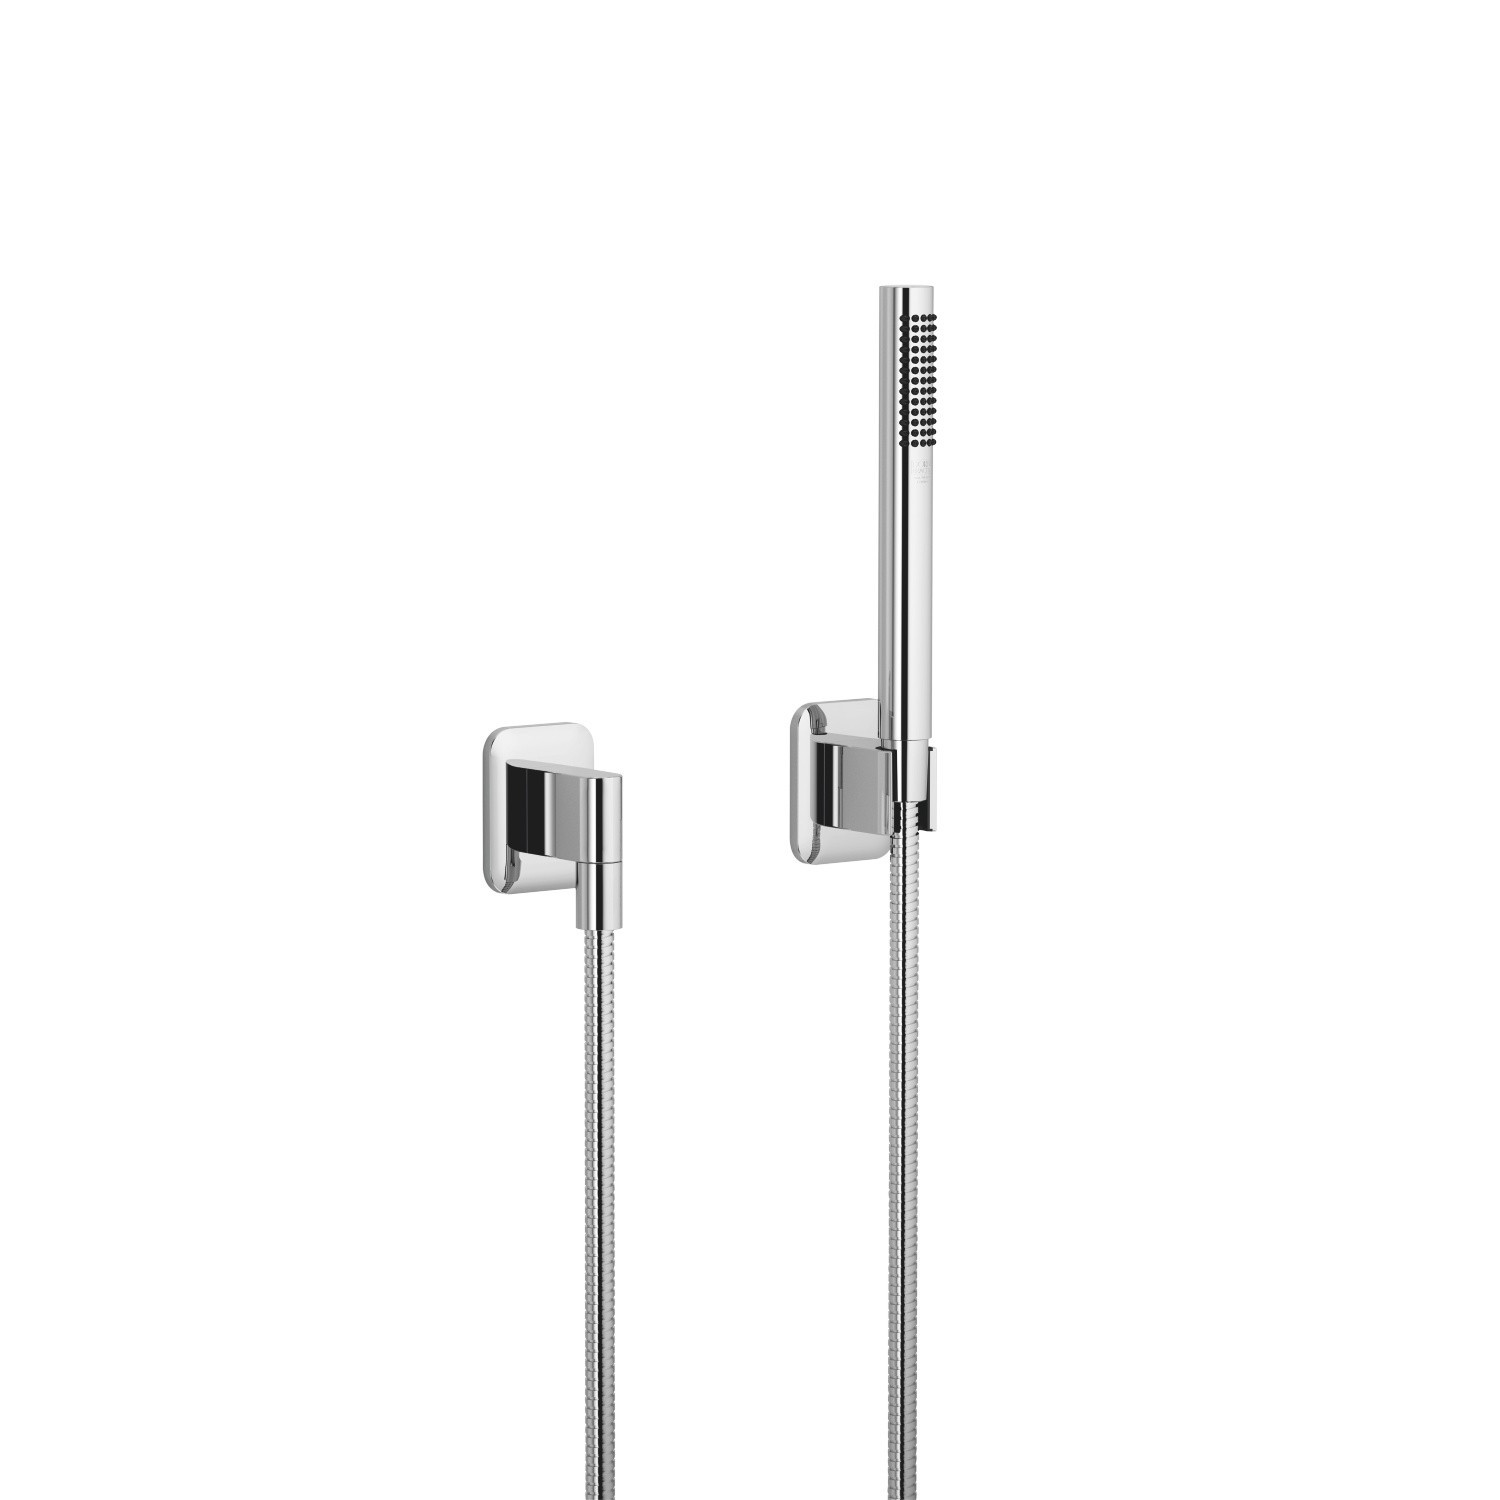 DORNBRACHT 27802845-0010 LISSÉ WALL MOUNT SINGLE-FUNCTION ROUND HAND SHOWER SET WITH INDIVIDUAL FLANGES